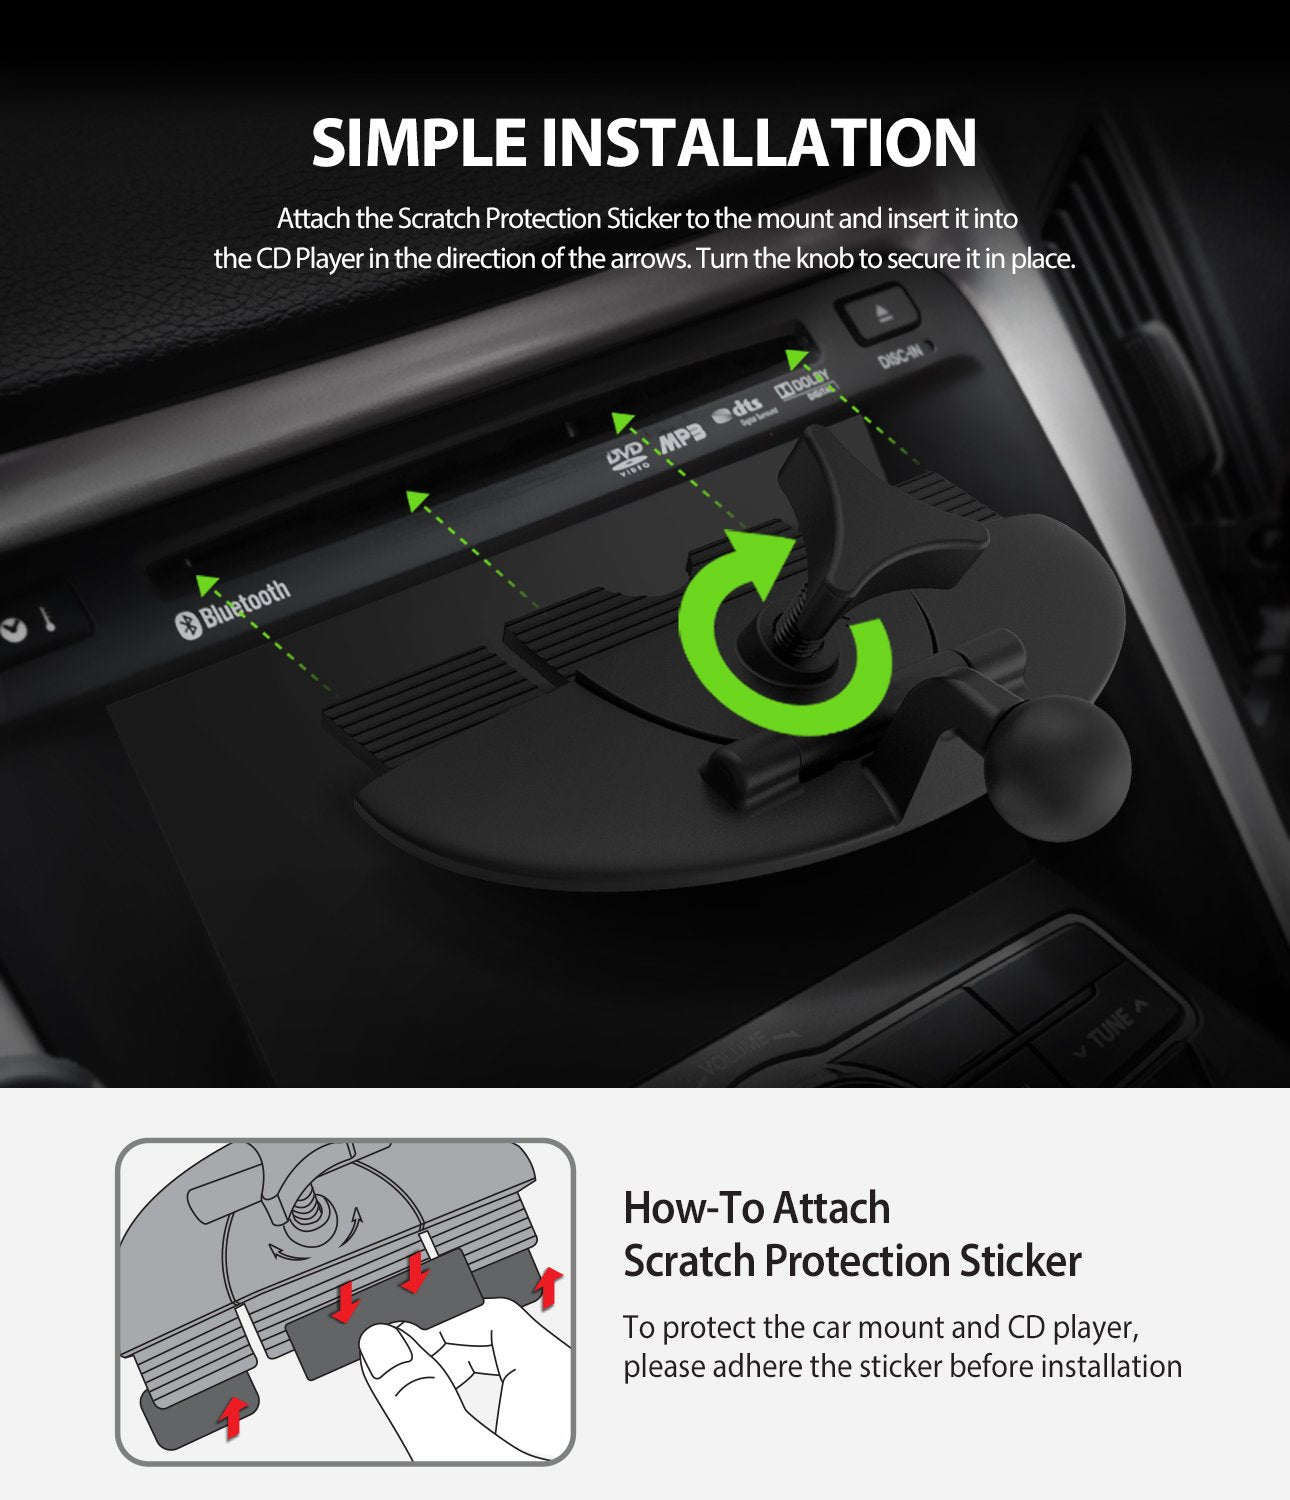 ringke cd slot 2 in 1 car mount simple and easy installation